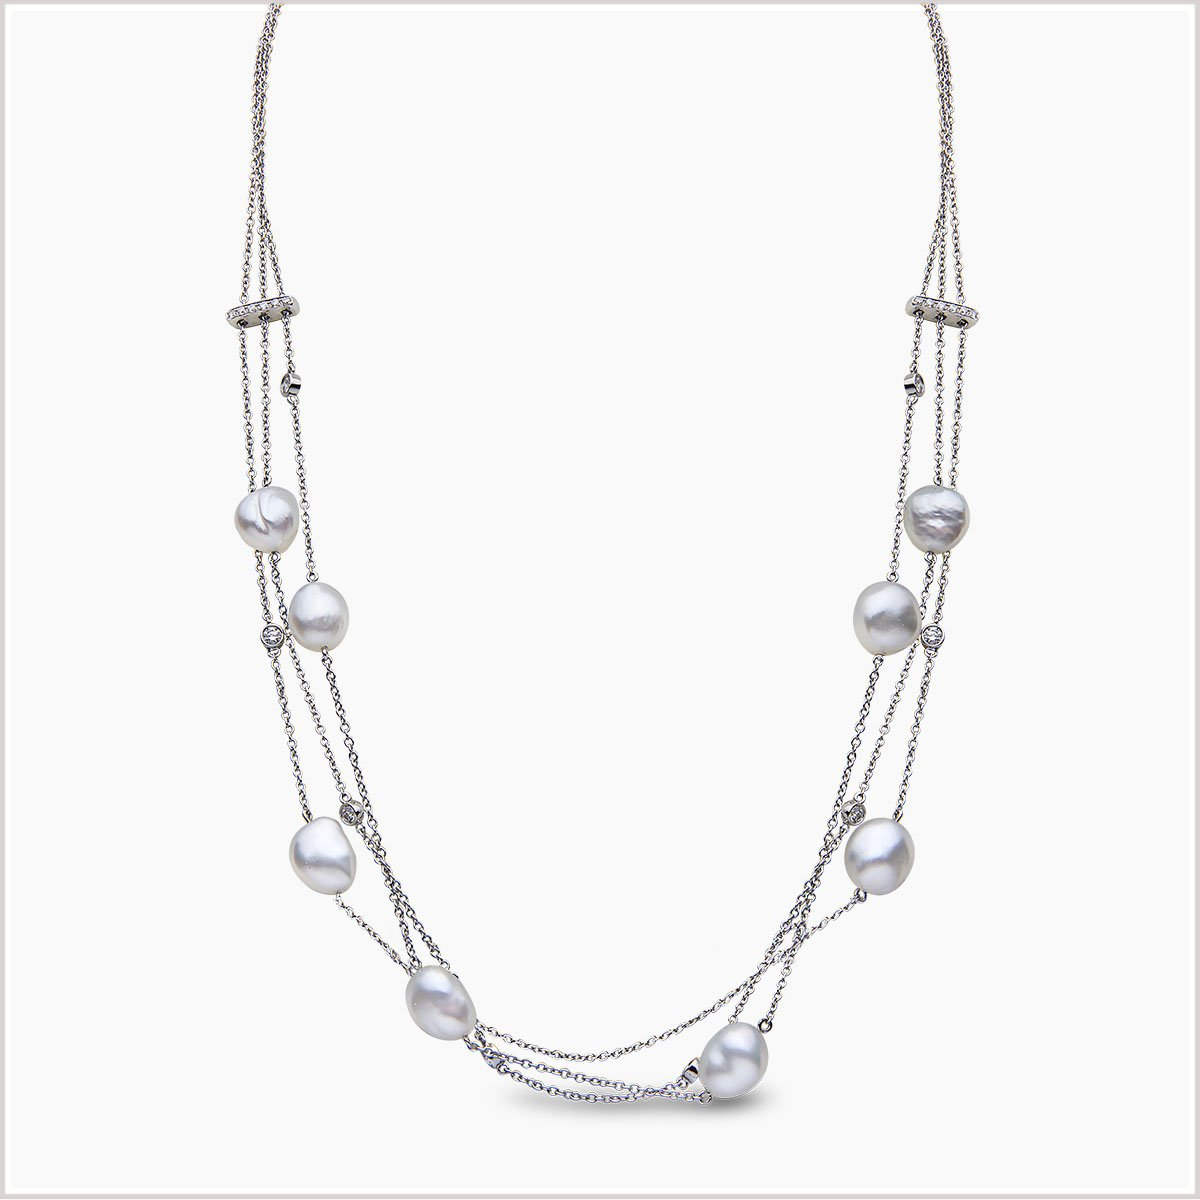 """<span id=""""product-title"""">BAROQUE </span><br><span id=""""product-description"""">SOUTH SEA PEARL AND DIAMOND NECKLACE IN 18CT WHITE GOLD</span>"""